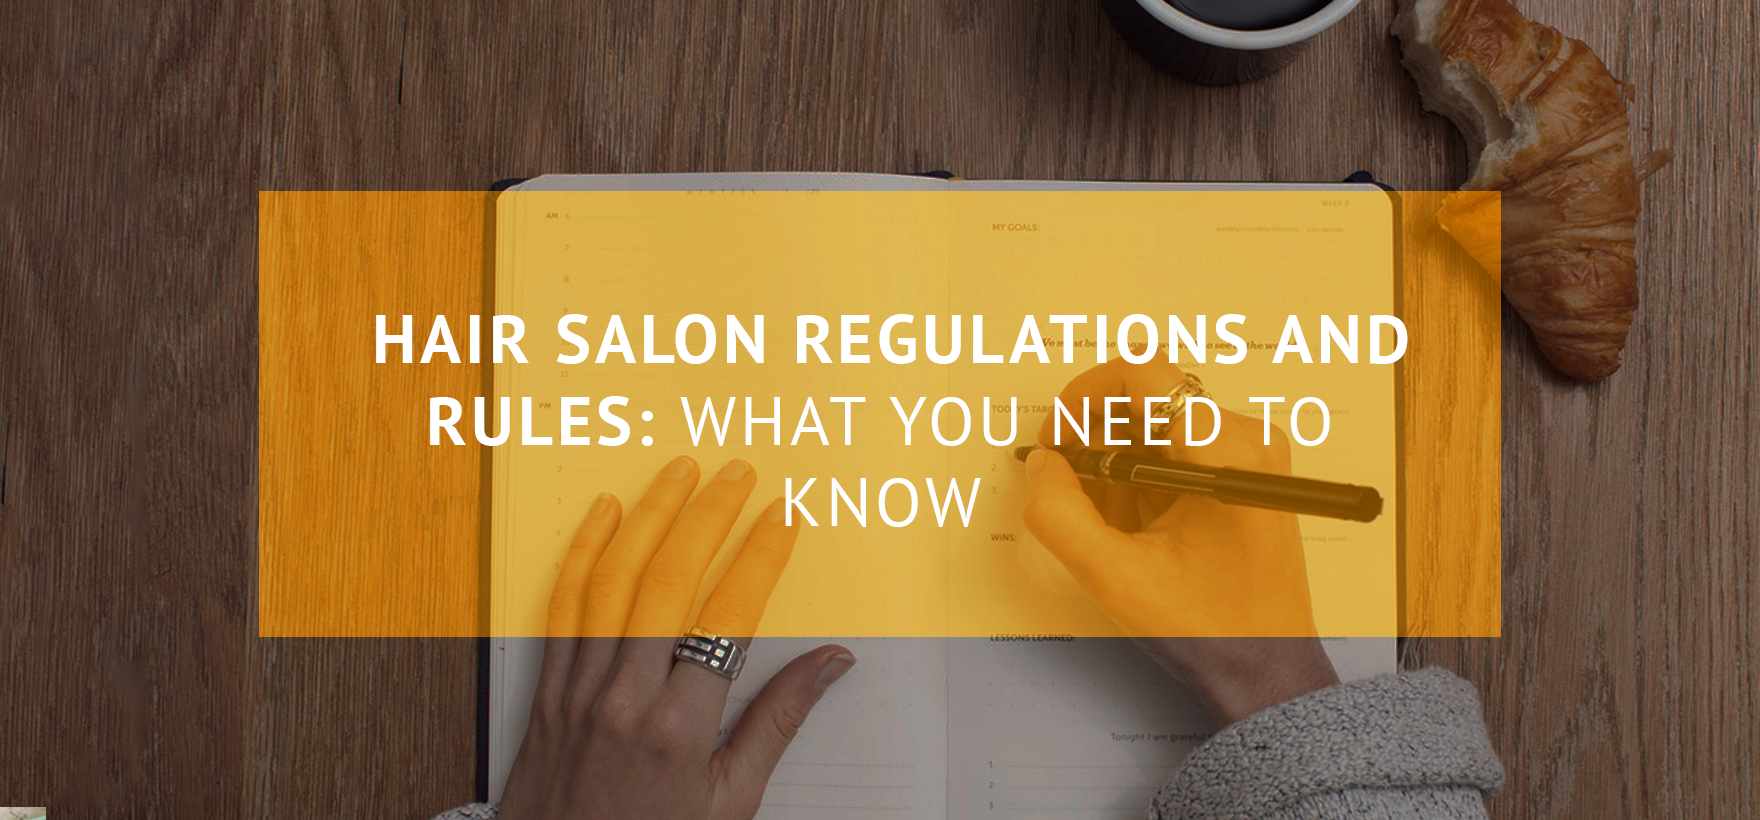 Hair Salon Regulations and Rules